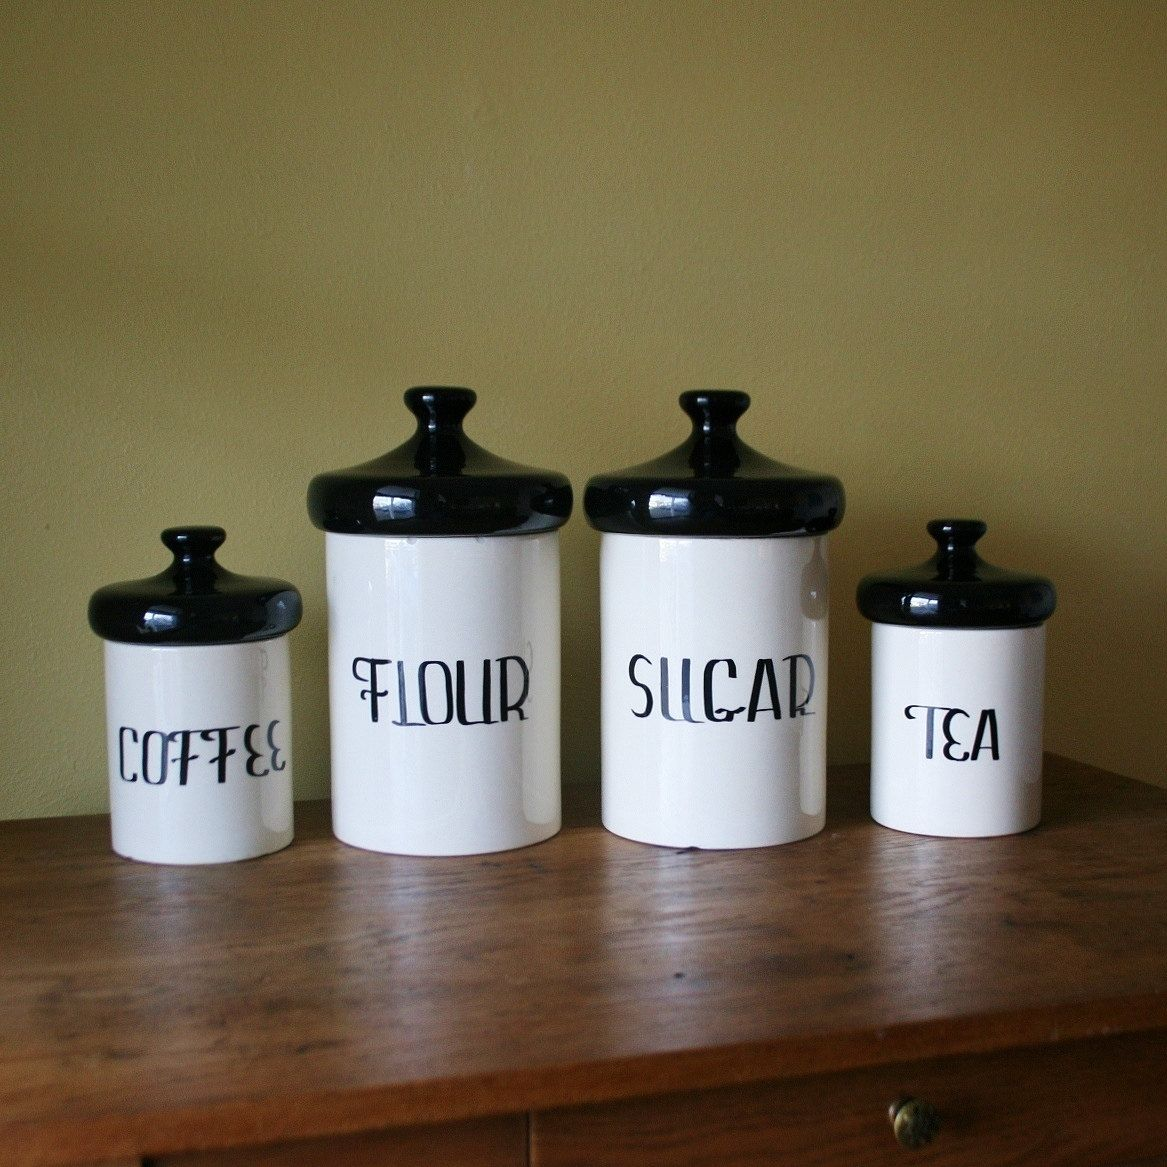 vintage canisters for kitchen vintage black and white ceramic canister set holiday designs 55 00 via etsy with images 5534